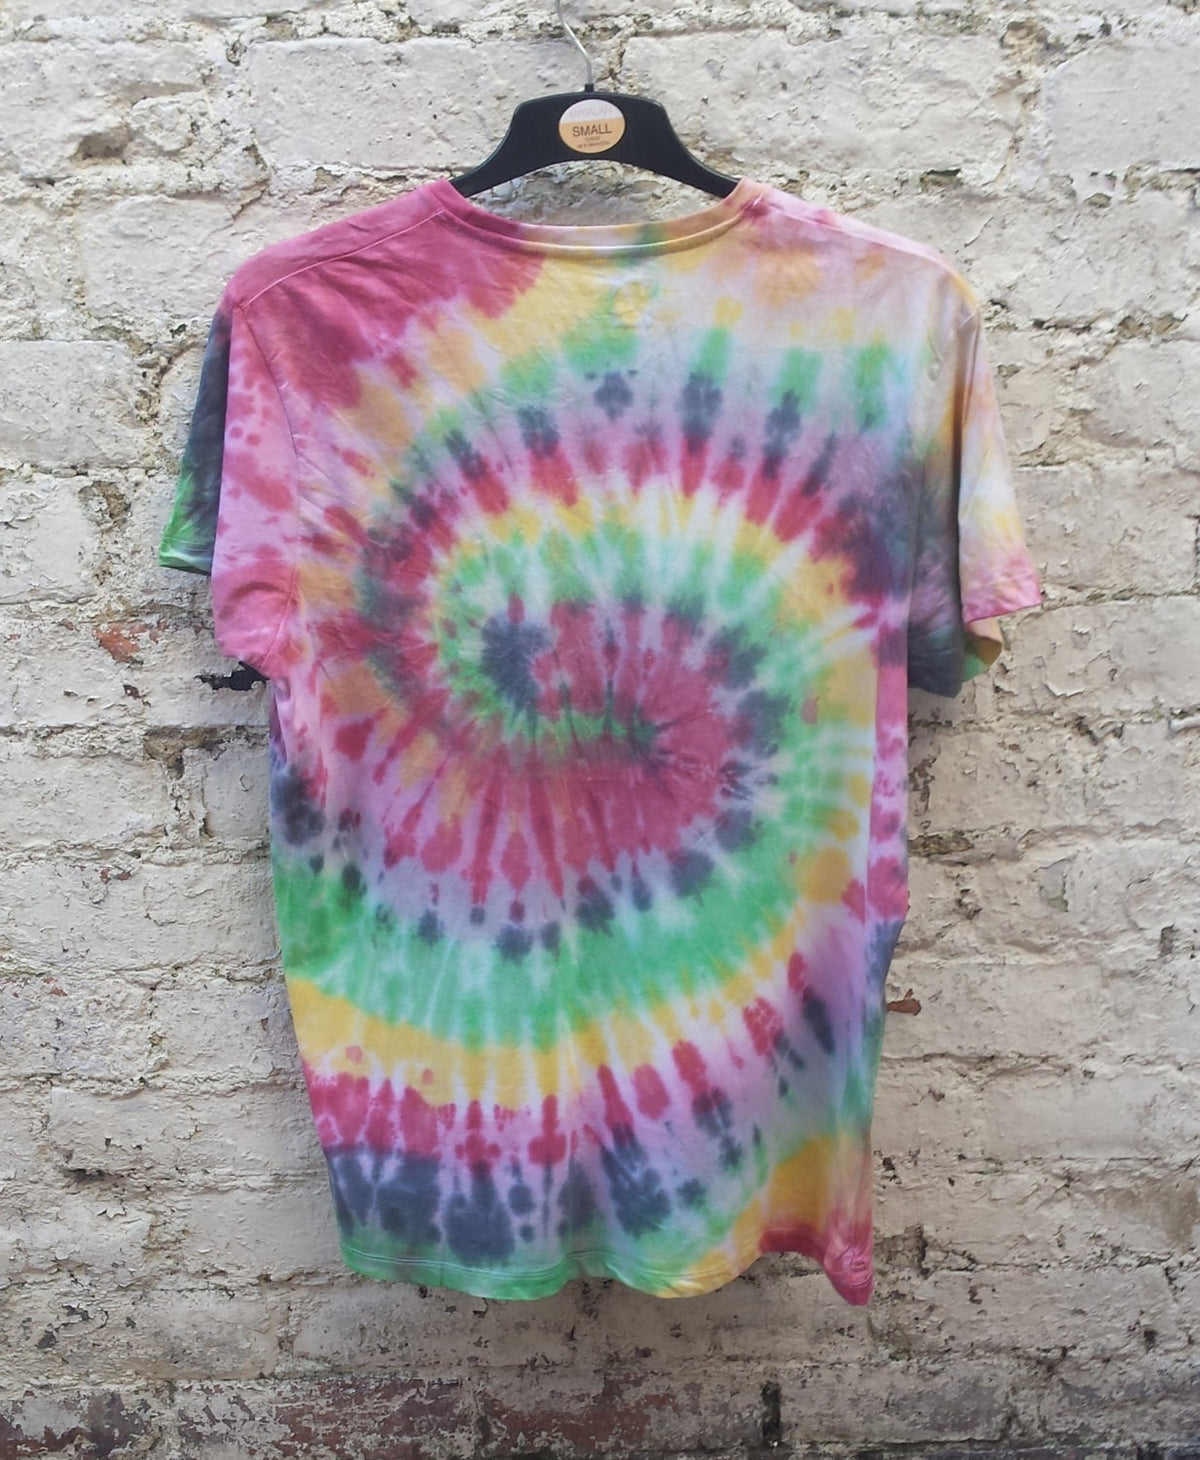 Rasta Tie Dye Tshirt Hippie Shirt Spiral Trippy Psychedelic Unisex T-shirt All Sizes Custom Tie Dye Clothing Hippy Gift Tiedye Gifts Ideas